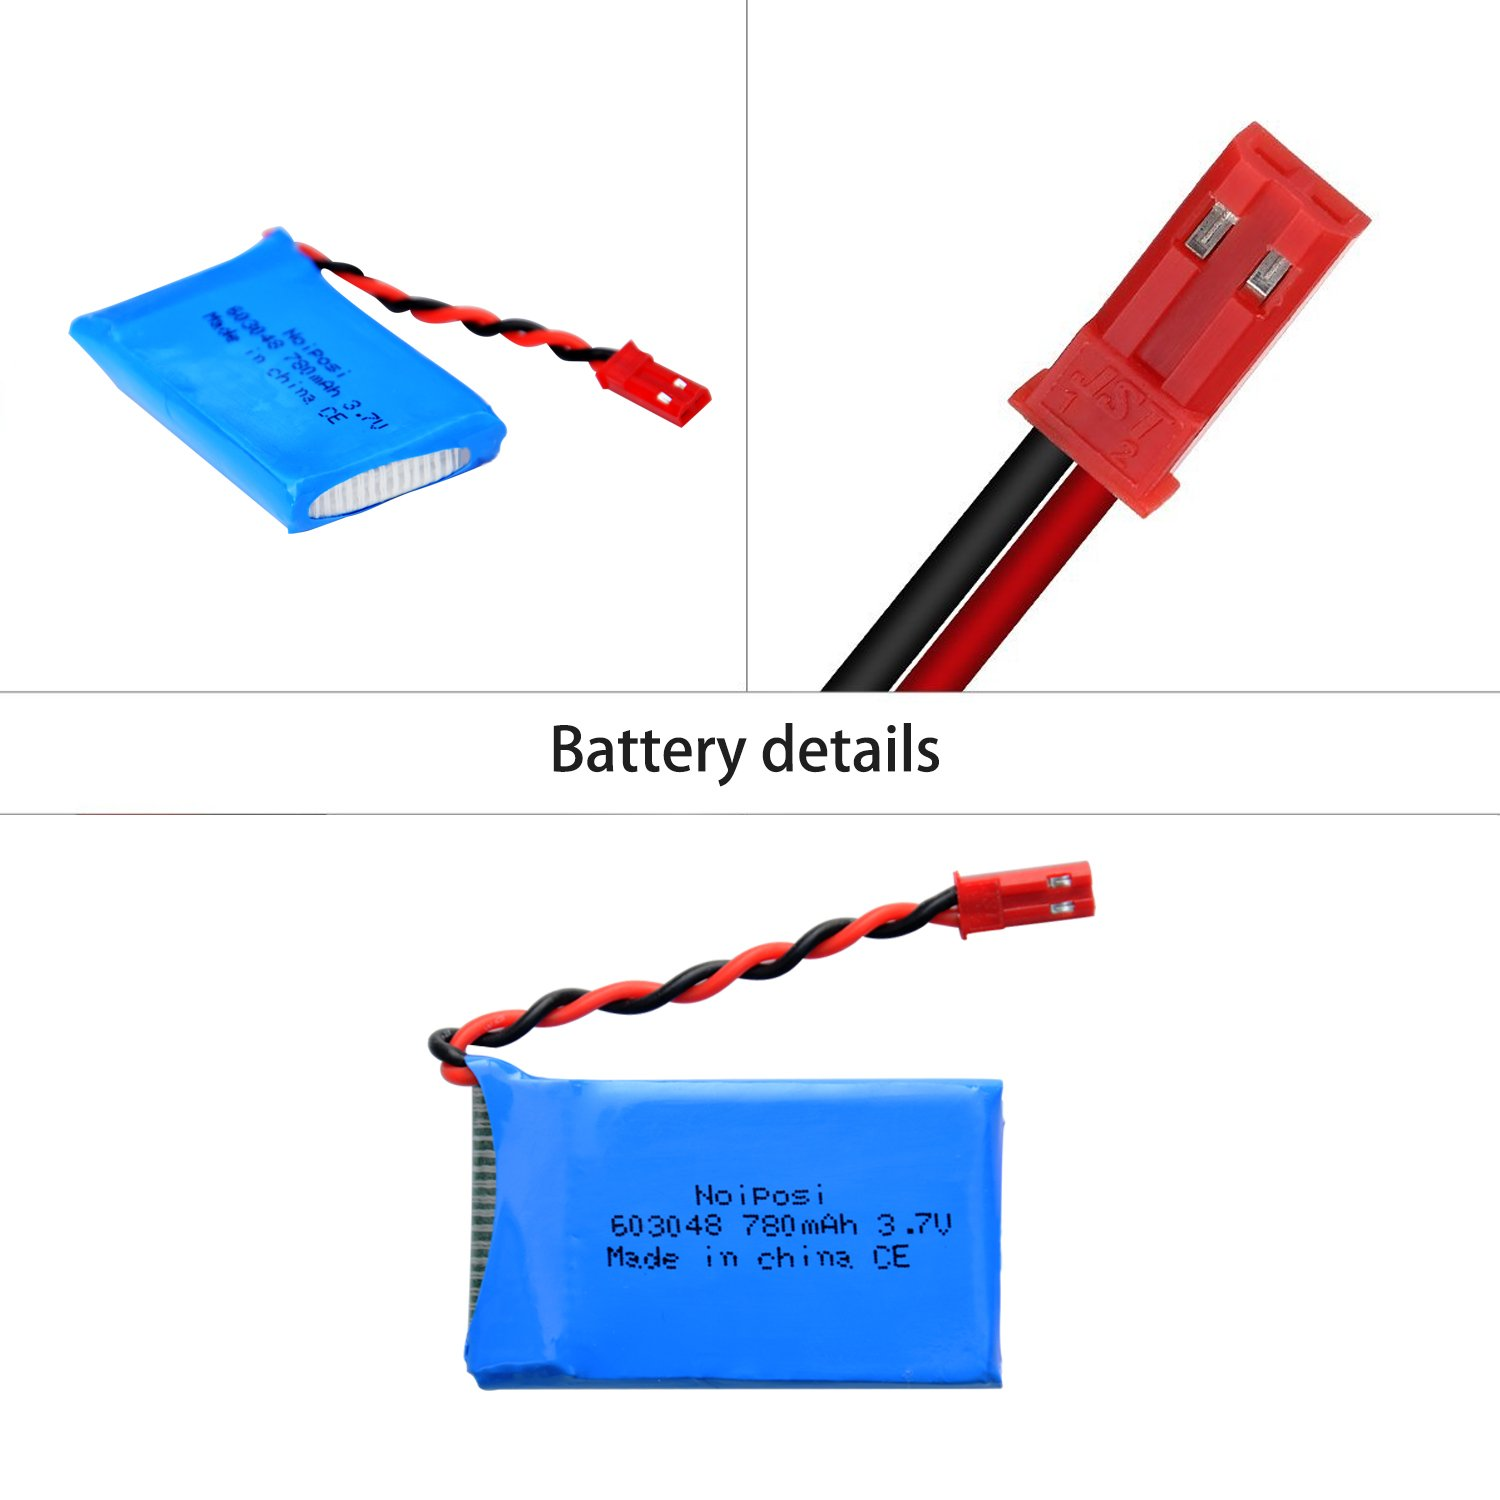 Noiposi 4pcs 37v 780mah 20c Lipo Battery With X6 Nbsc Wiring Instructions Charger For Wltoys V636 Quadcopter Toys Games